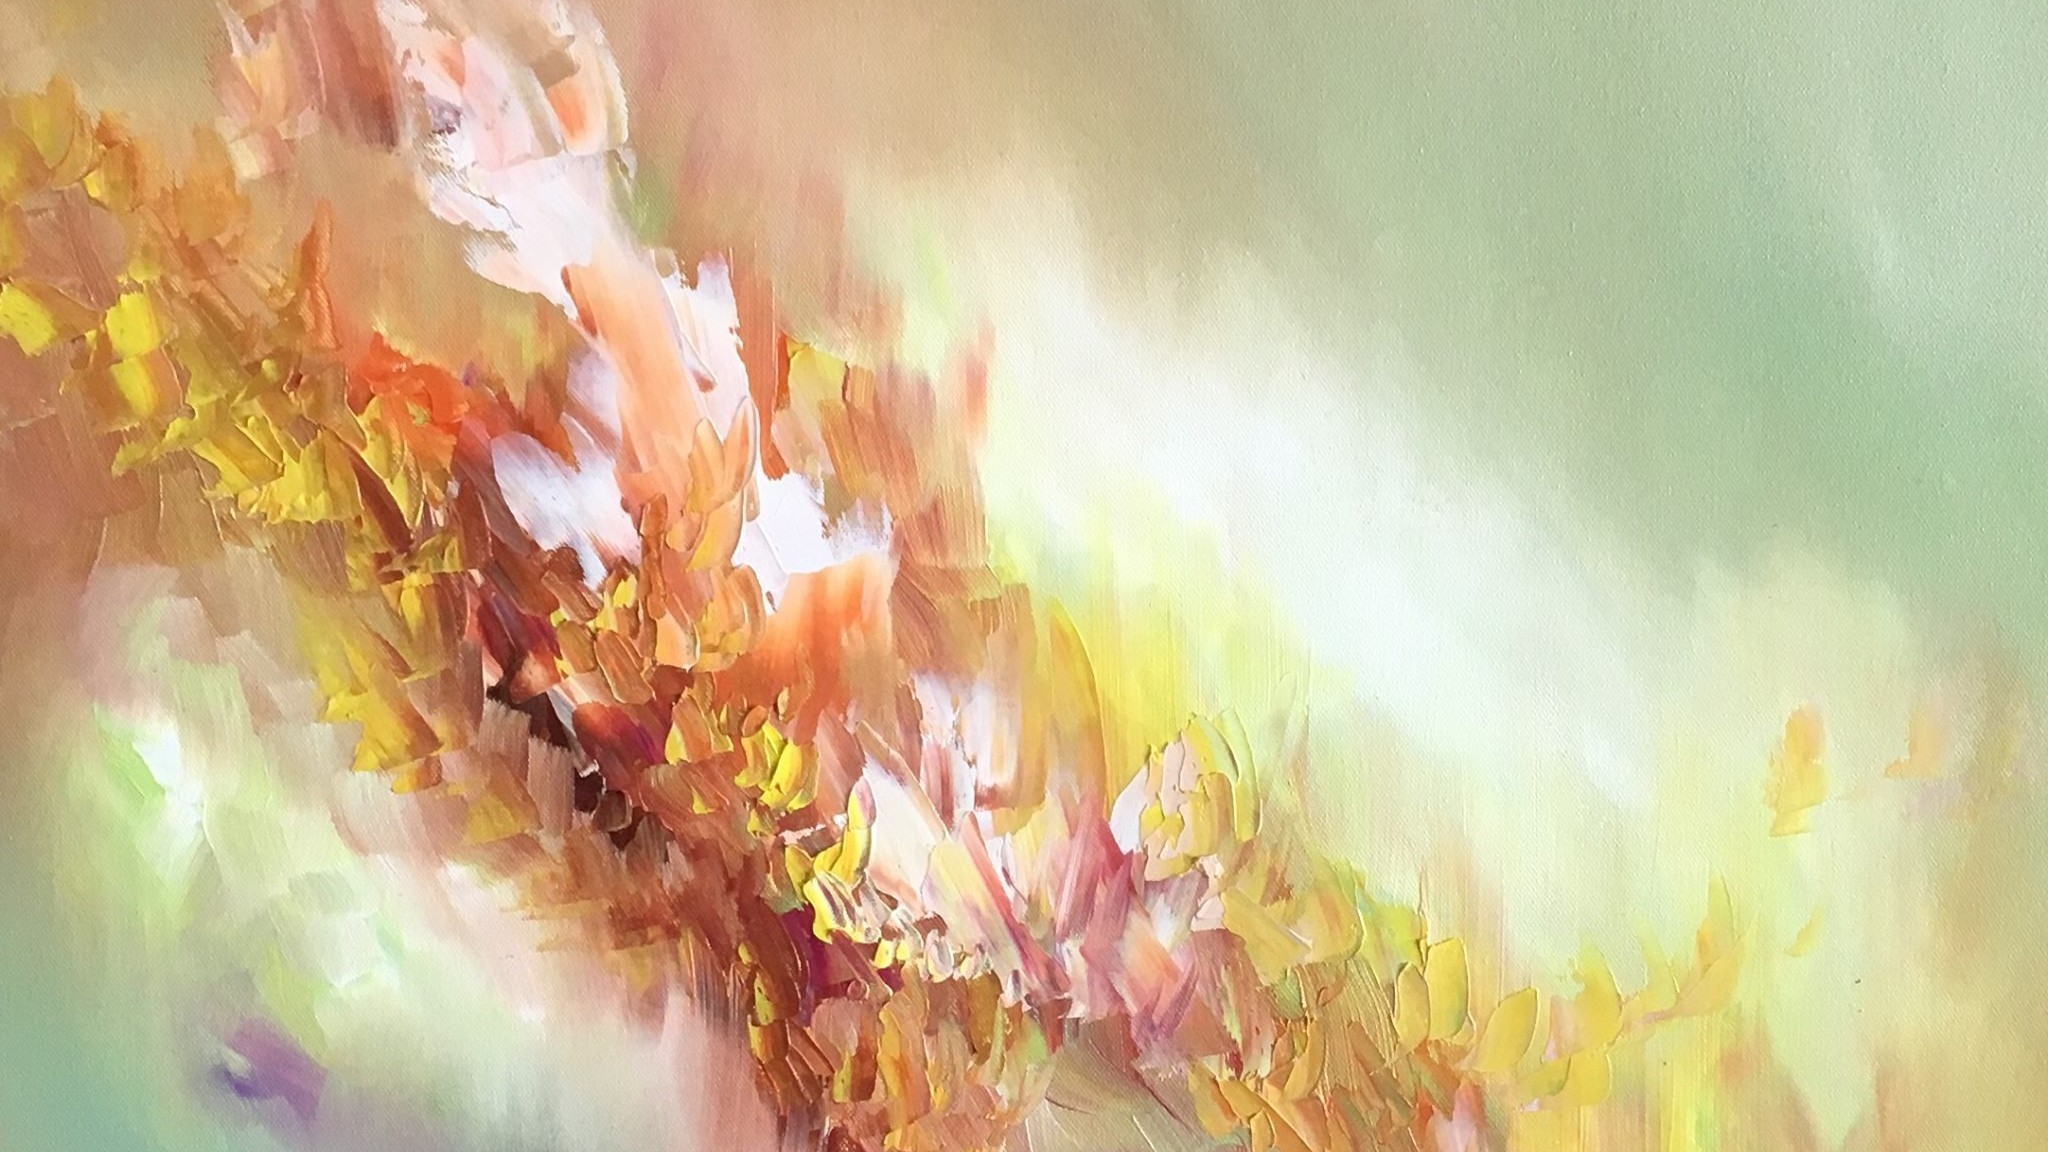 This Artist with Synesthesia Sees Colors in Music and Paints Your Favorite Songs